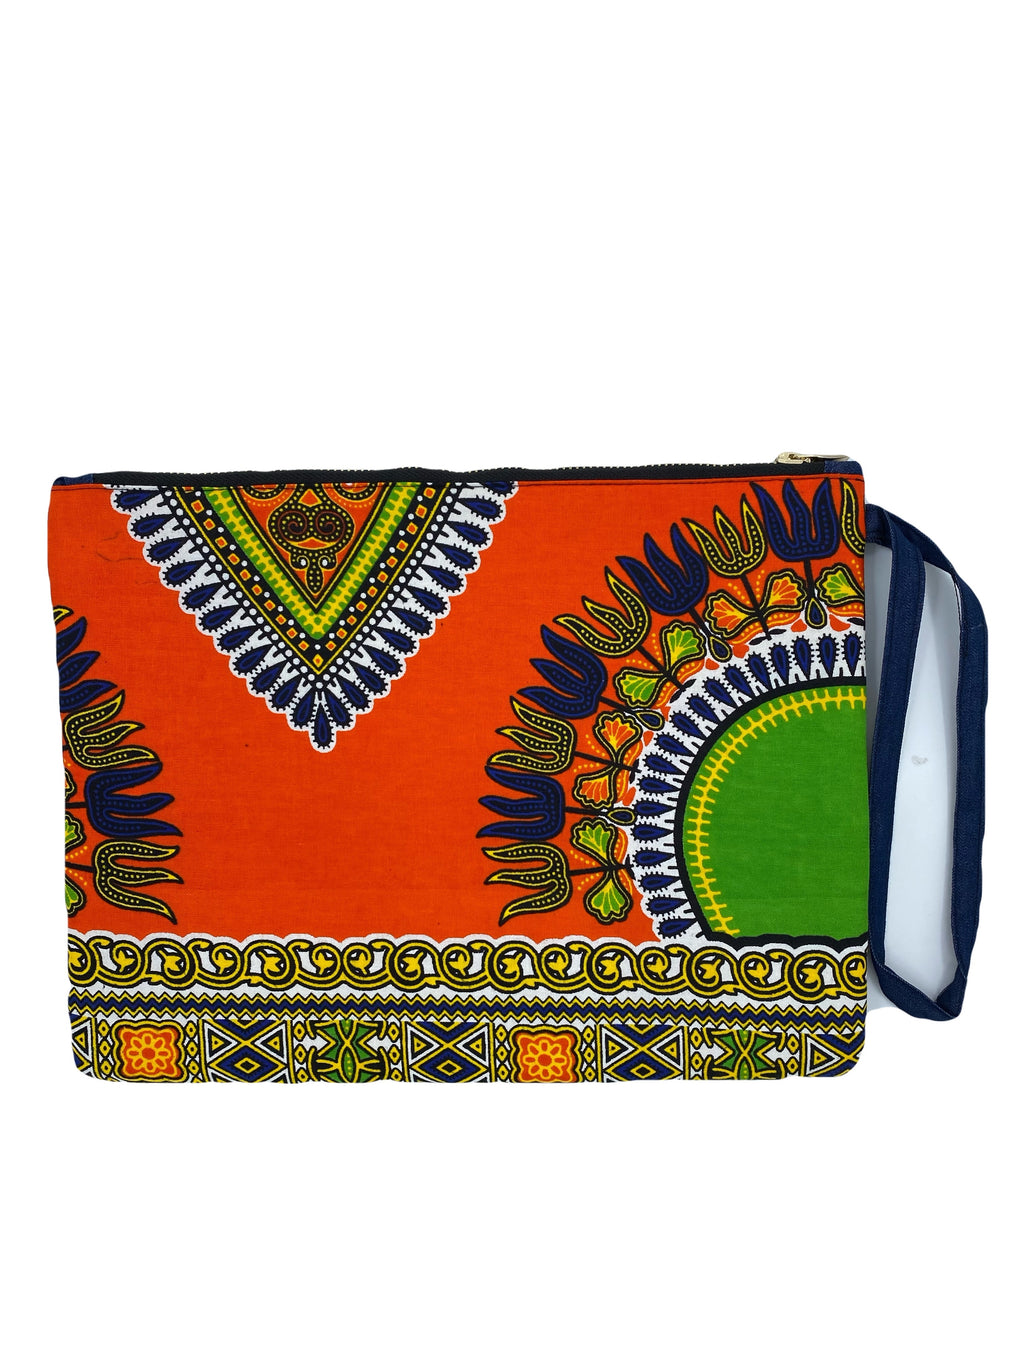 Denim Styled Dashiki Pouch/Purse